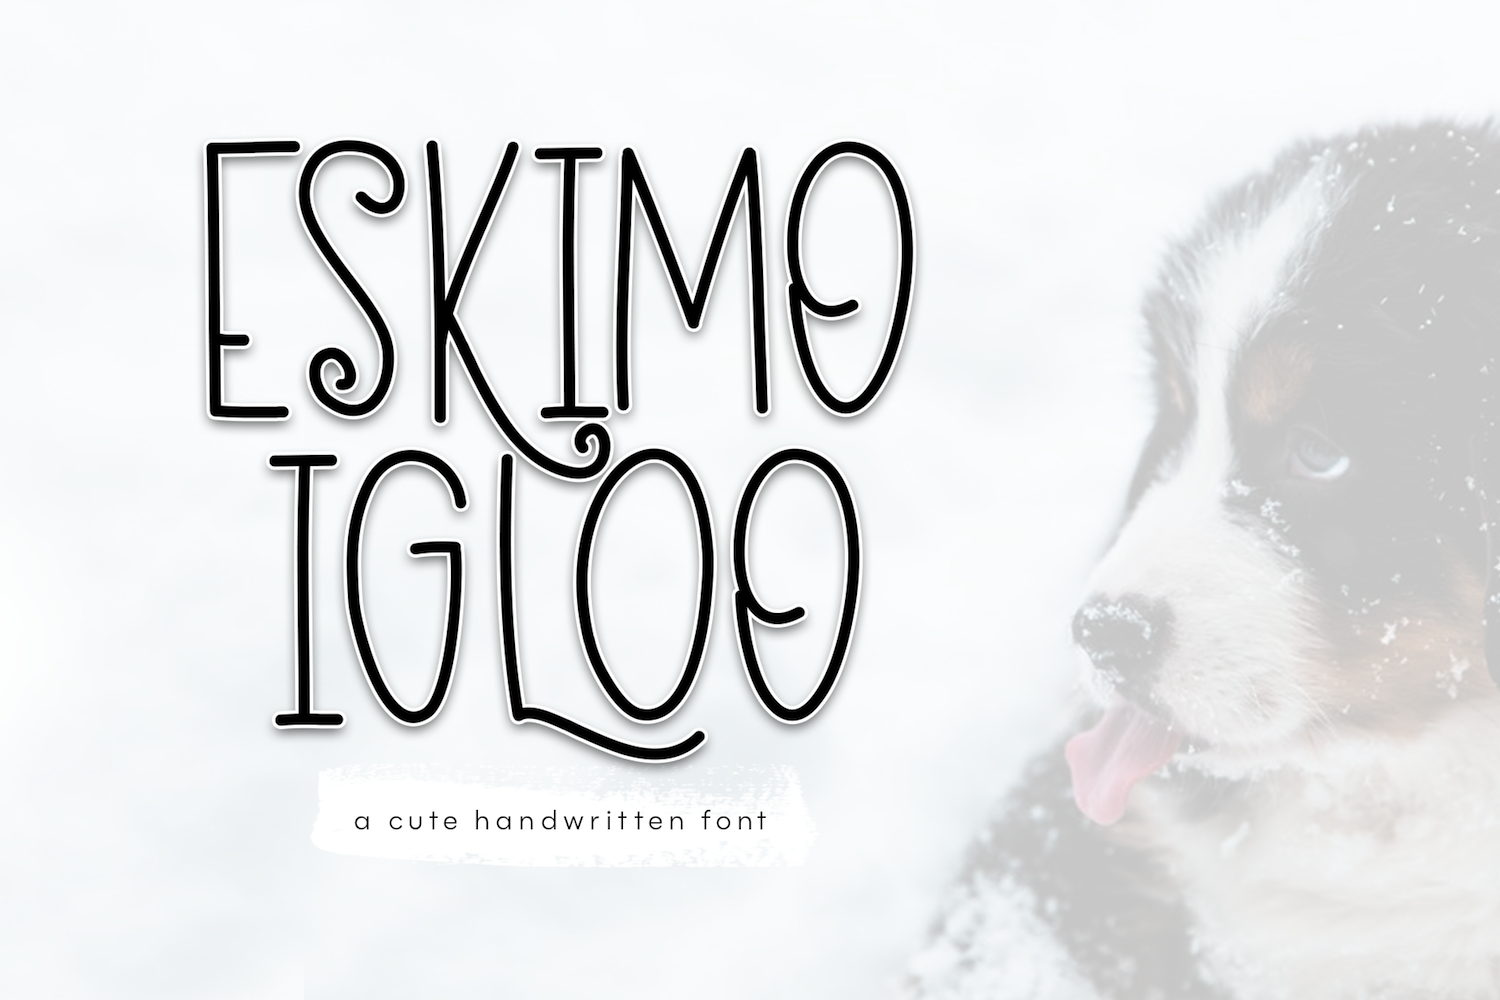 Eskimo Igloo - A Fun & Quirky Font example image 1